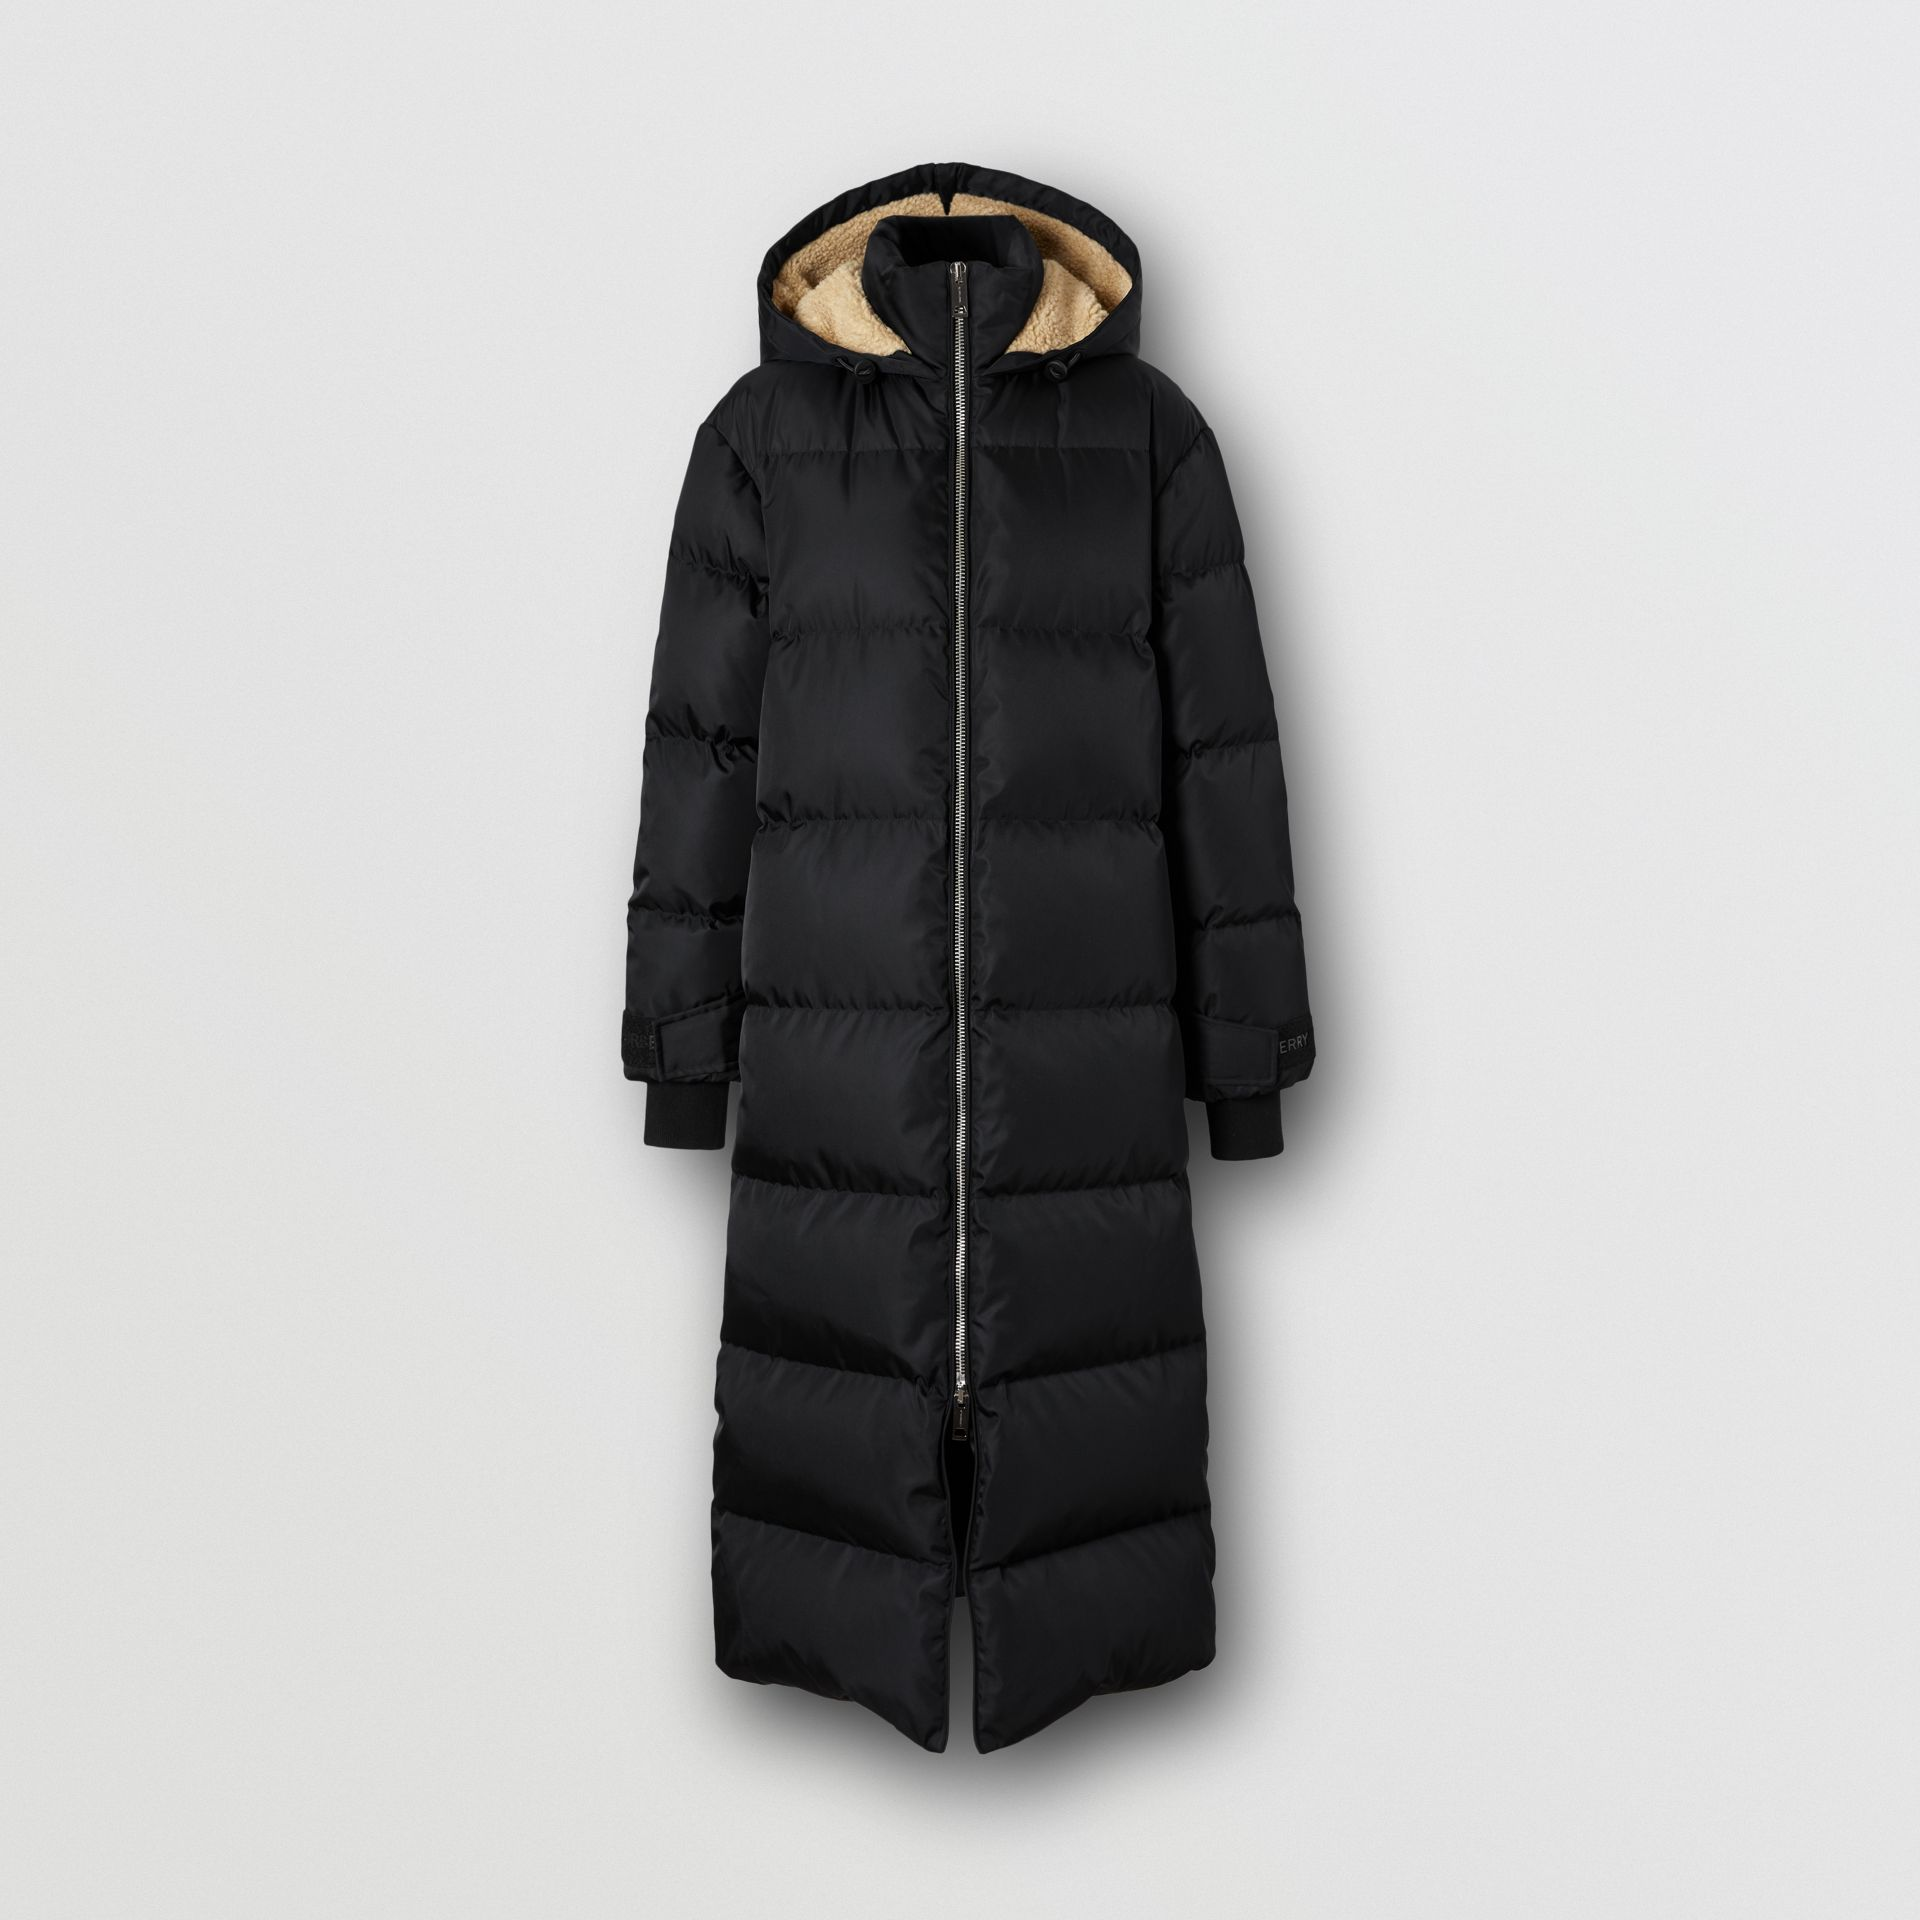 Logo Detail Puffer Coat in Black - Women | Burberry United Kingdom - gallery image 3